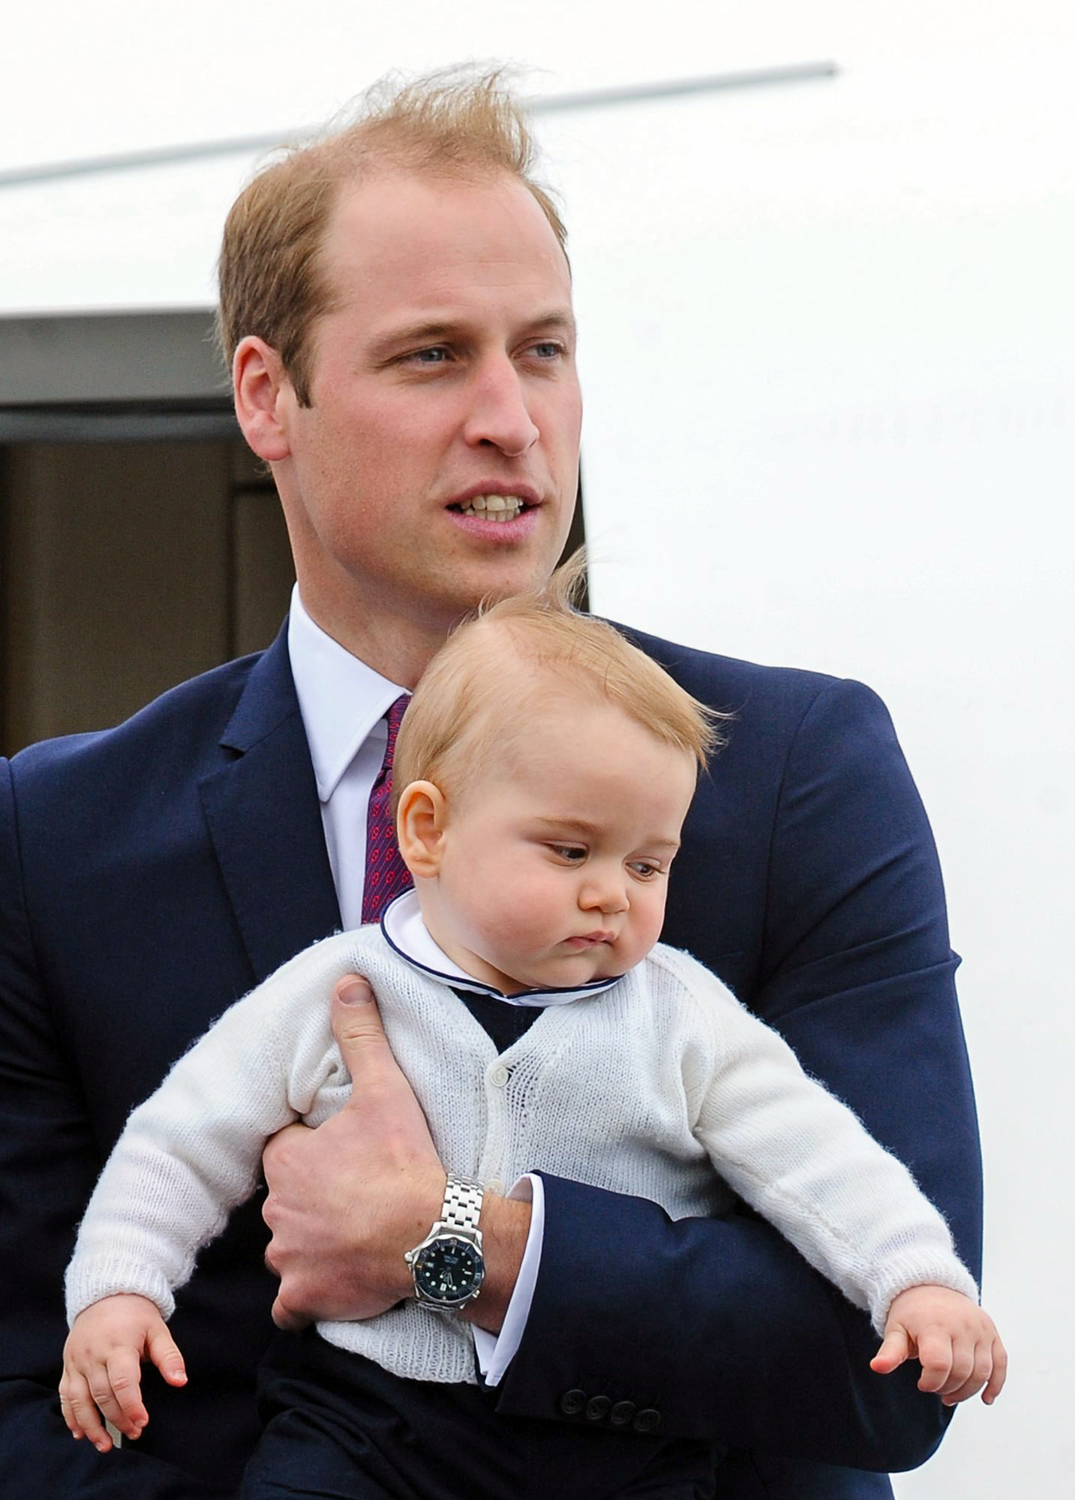 Prince William, Duke of Cambridge, holds Prince George as they board a Royal Australian Airforce Jet heading to Sydney at an airport in Wellington, New Zealand, April 16, 2014. The Duke and Duchess of Cambridge will be in Australia until April 25, 2014.